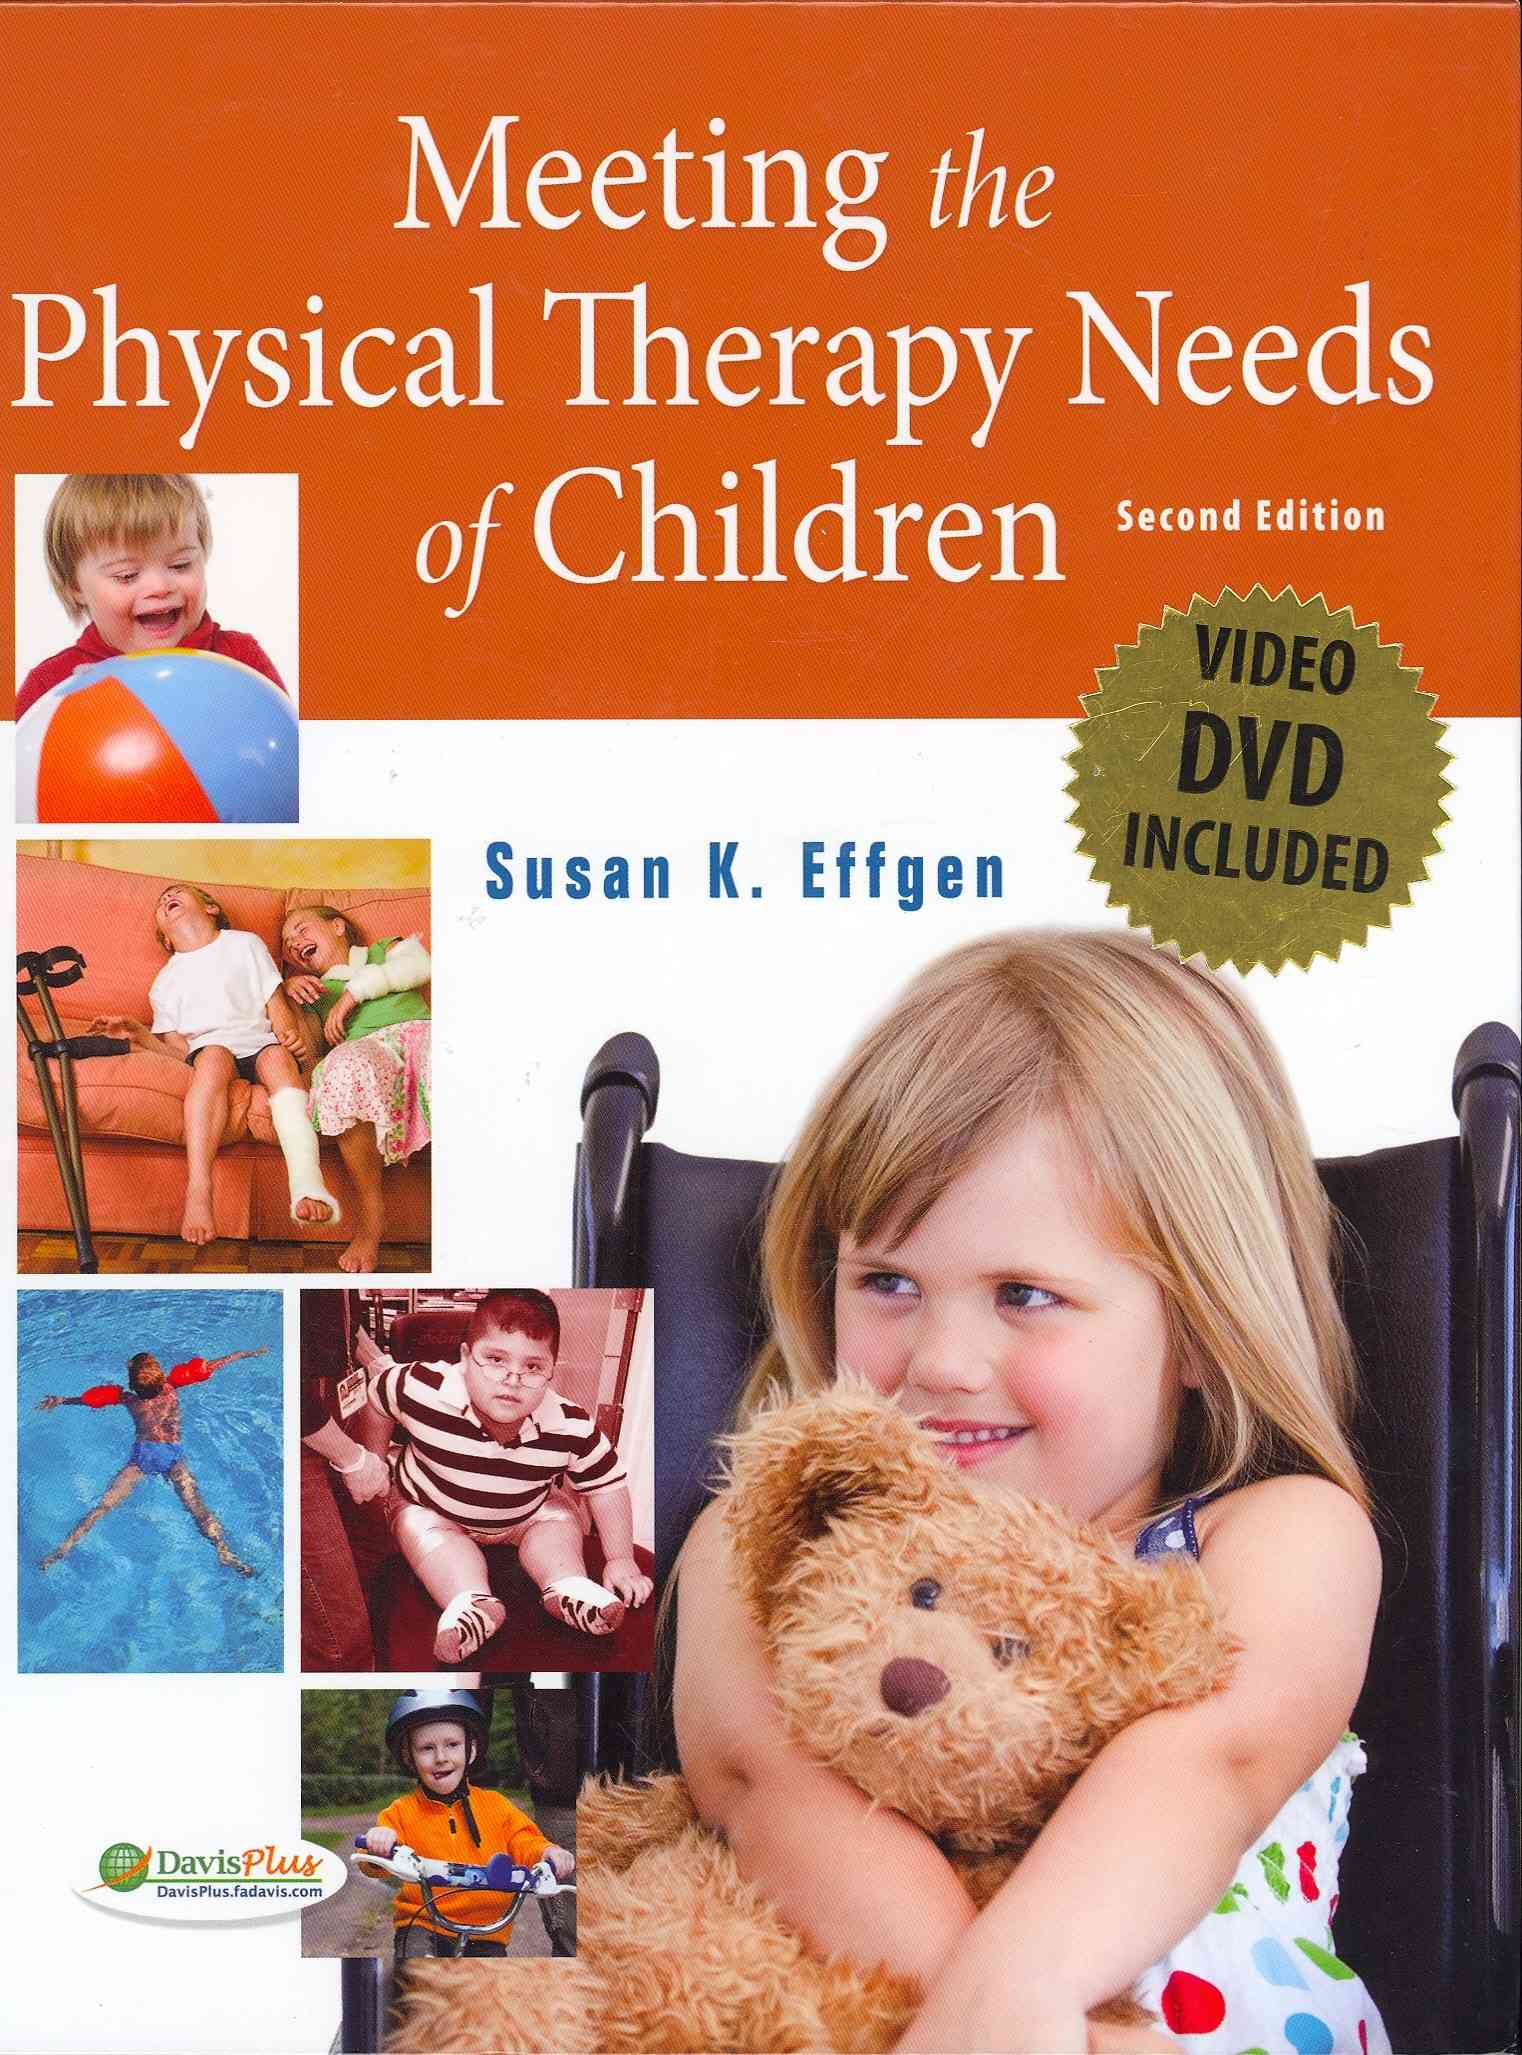 Meeting the Physical Therapy Needs of Children By Effgen, Susan K., Ph.D.